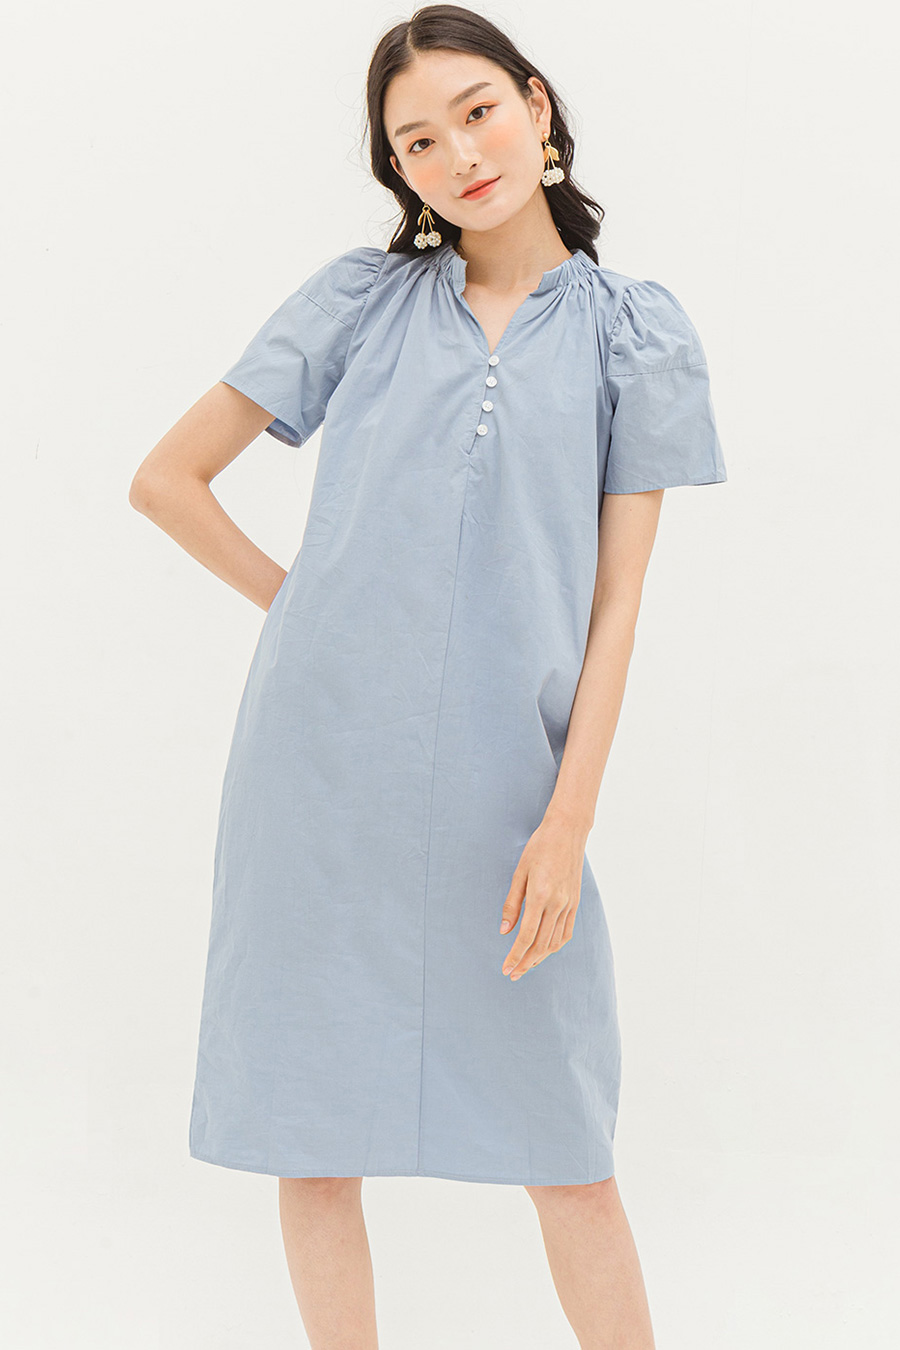 TEAGAN DRESS - PERRY